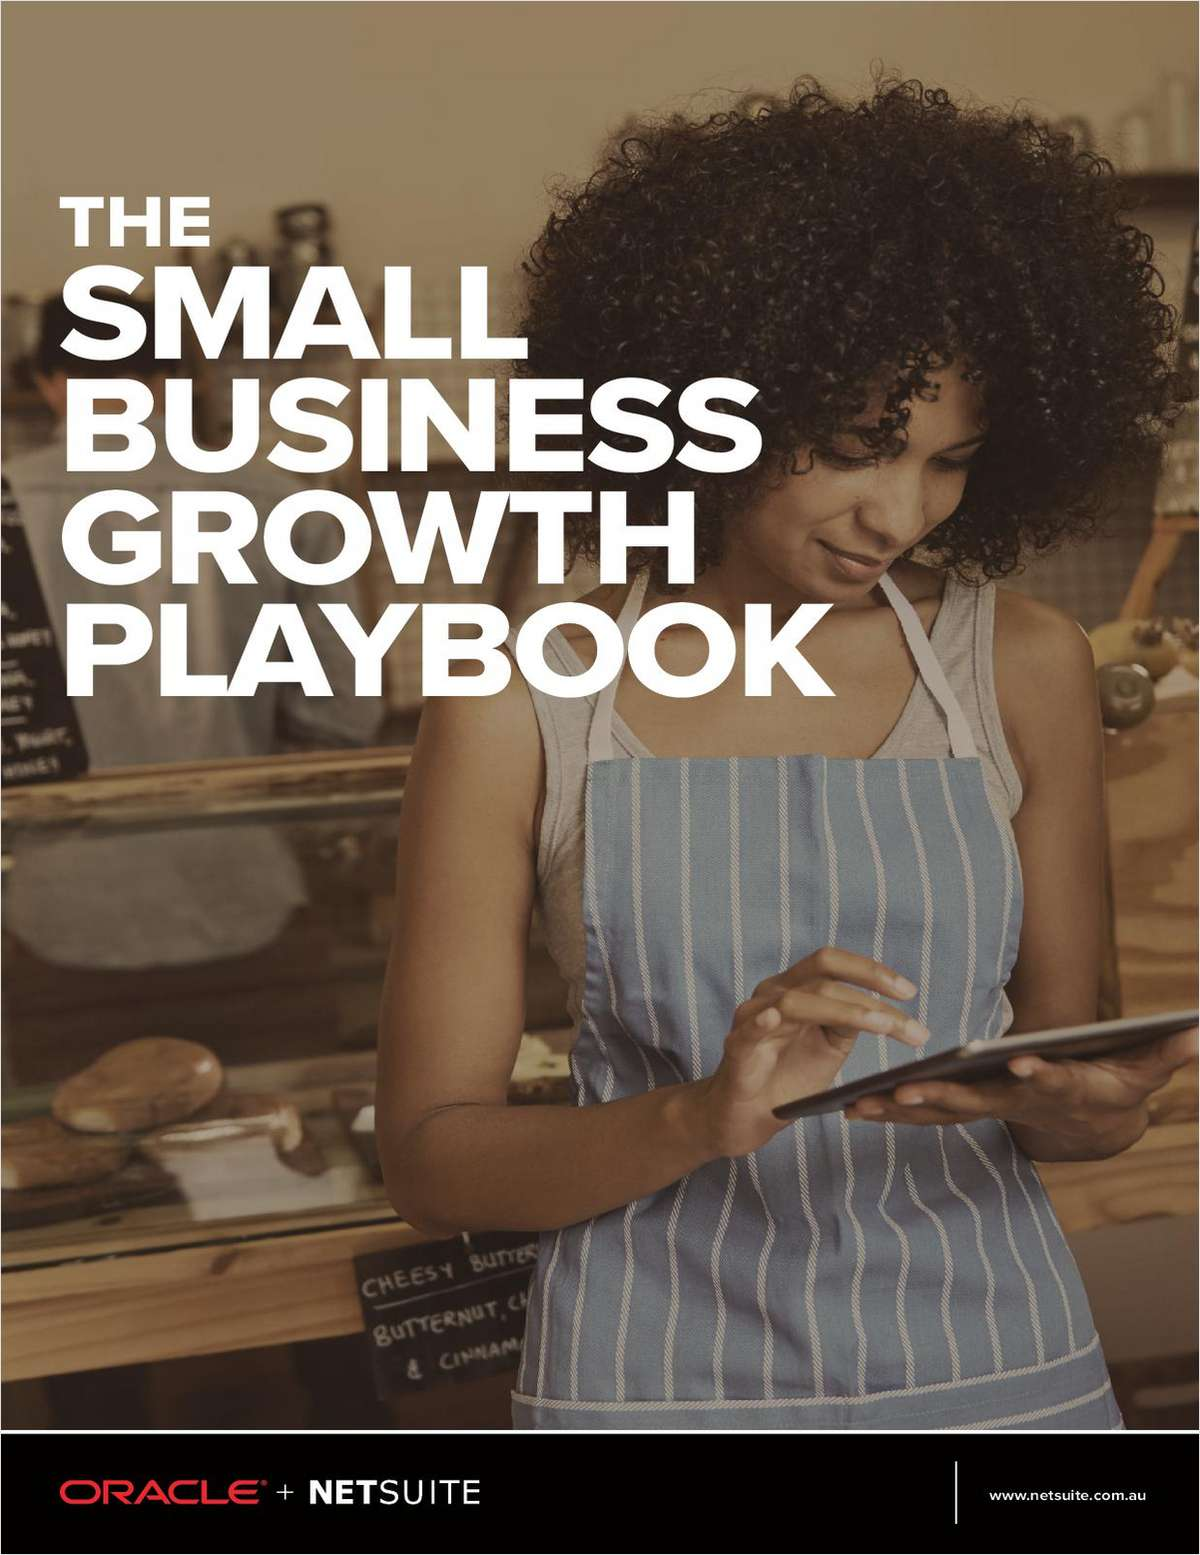 The Small Business Growth Playbook